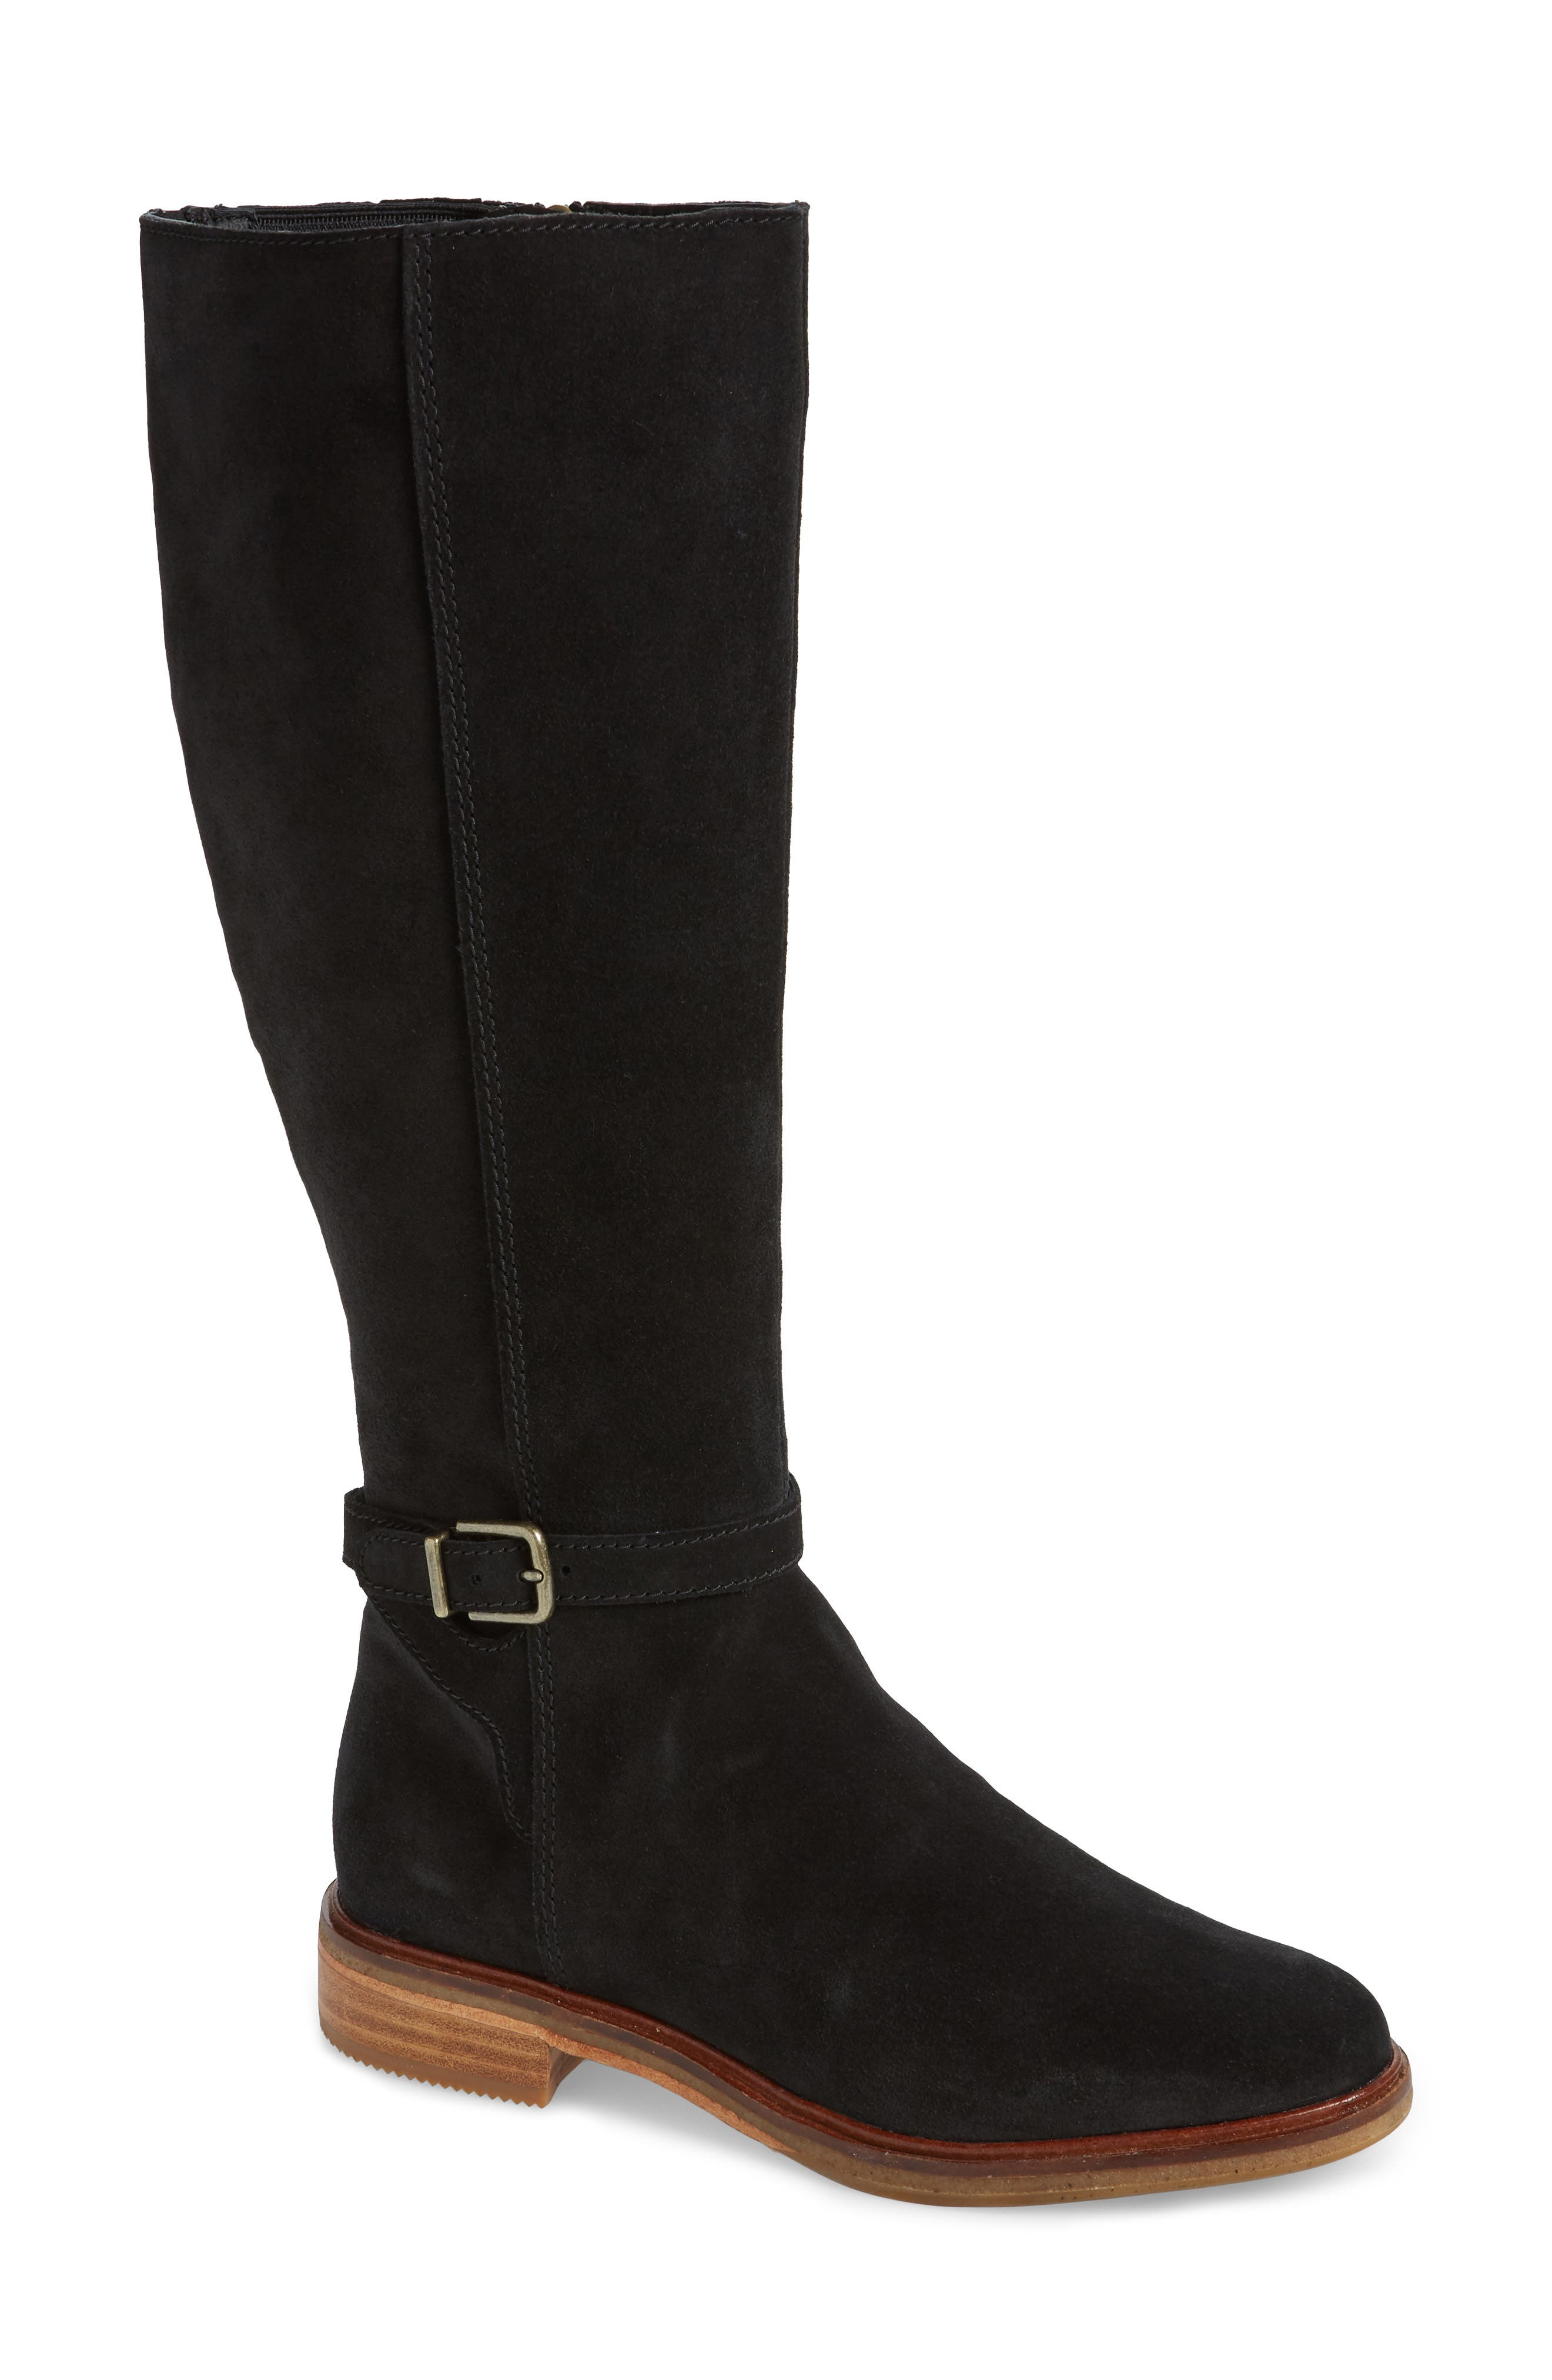 Clarkdale Clad Boot,                             Main thumbnail 1, color,                             BLACK SUEDE